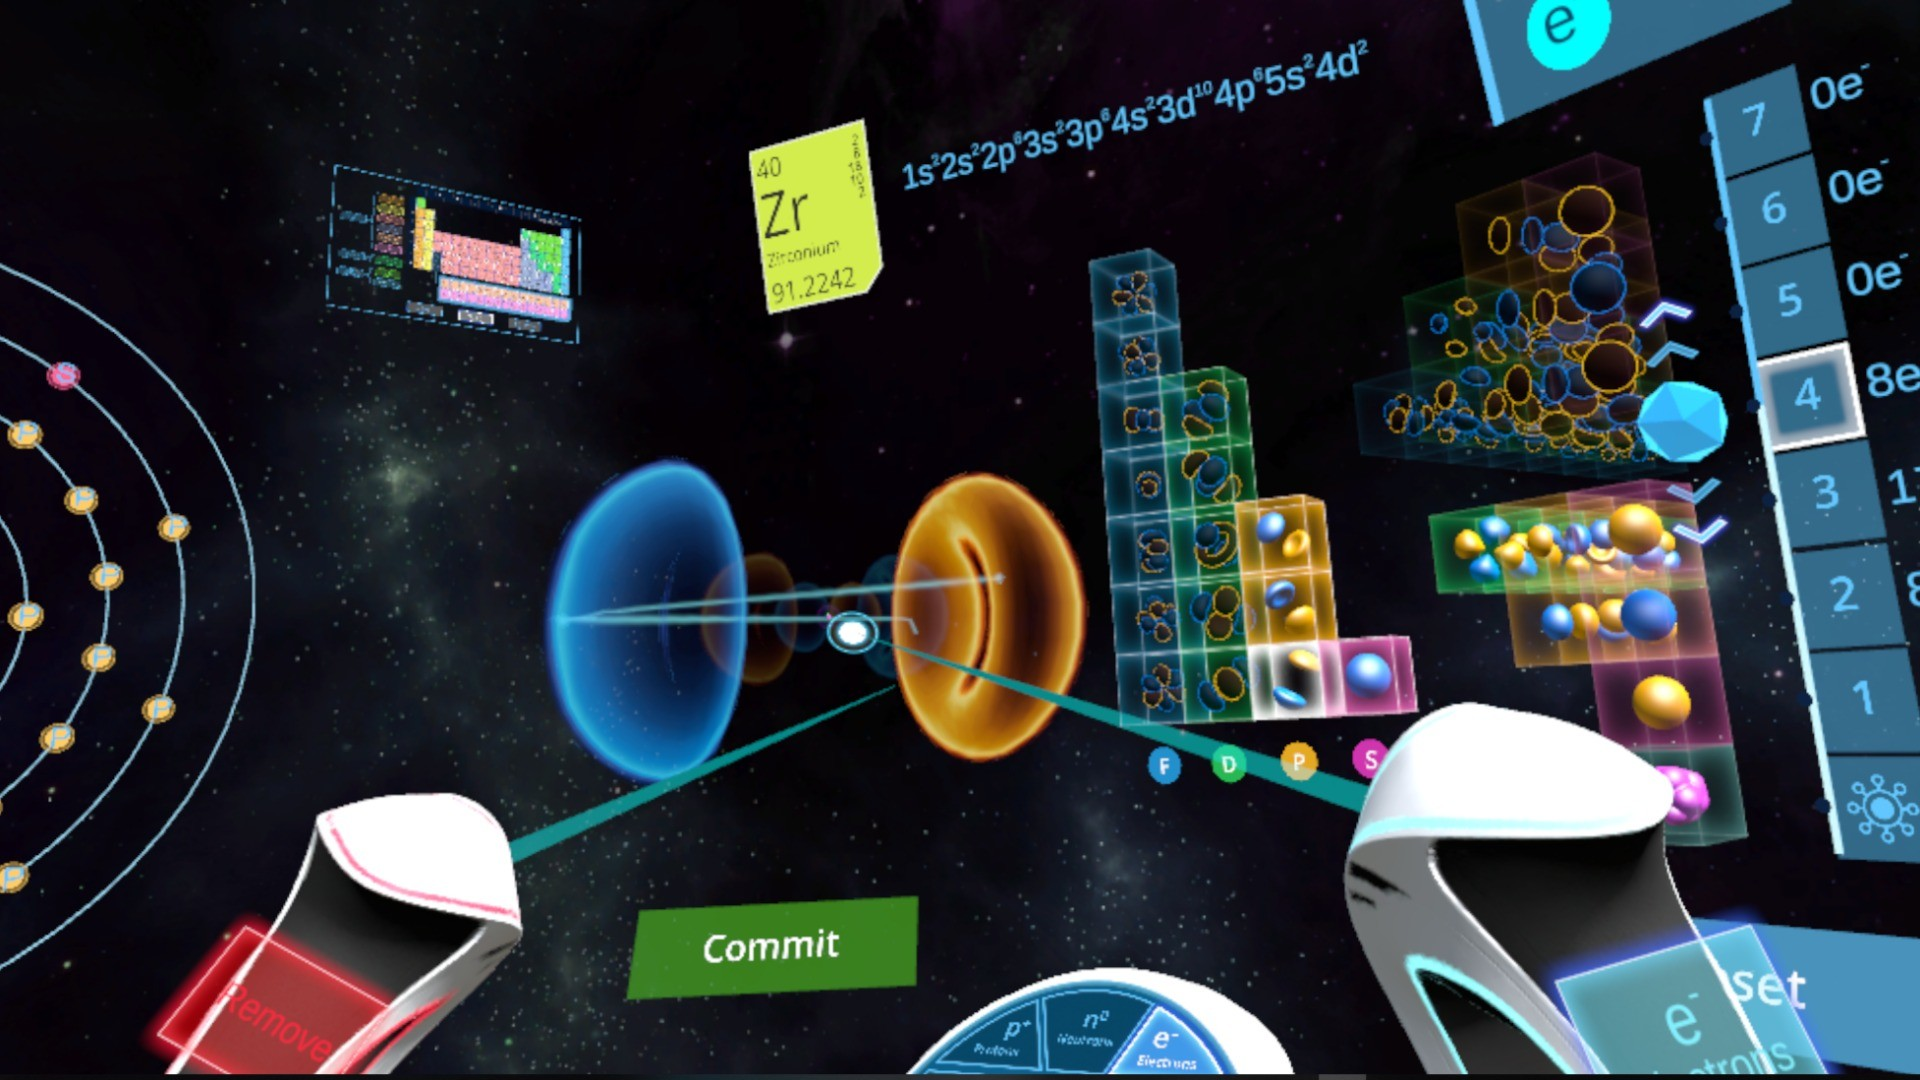 Abelana's Atom Maker screenshot